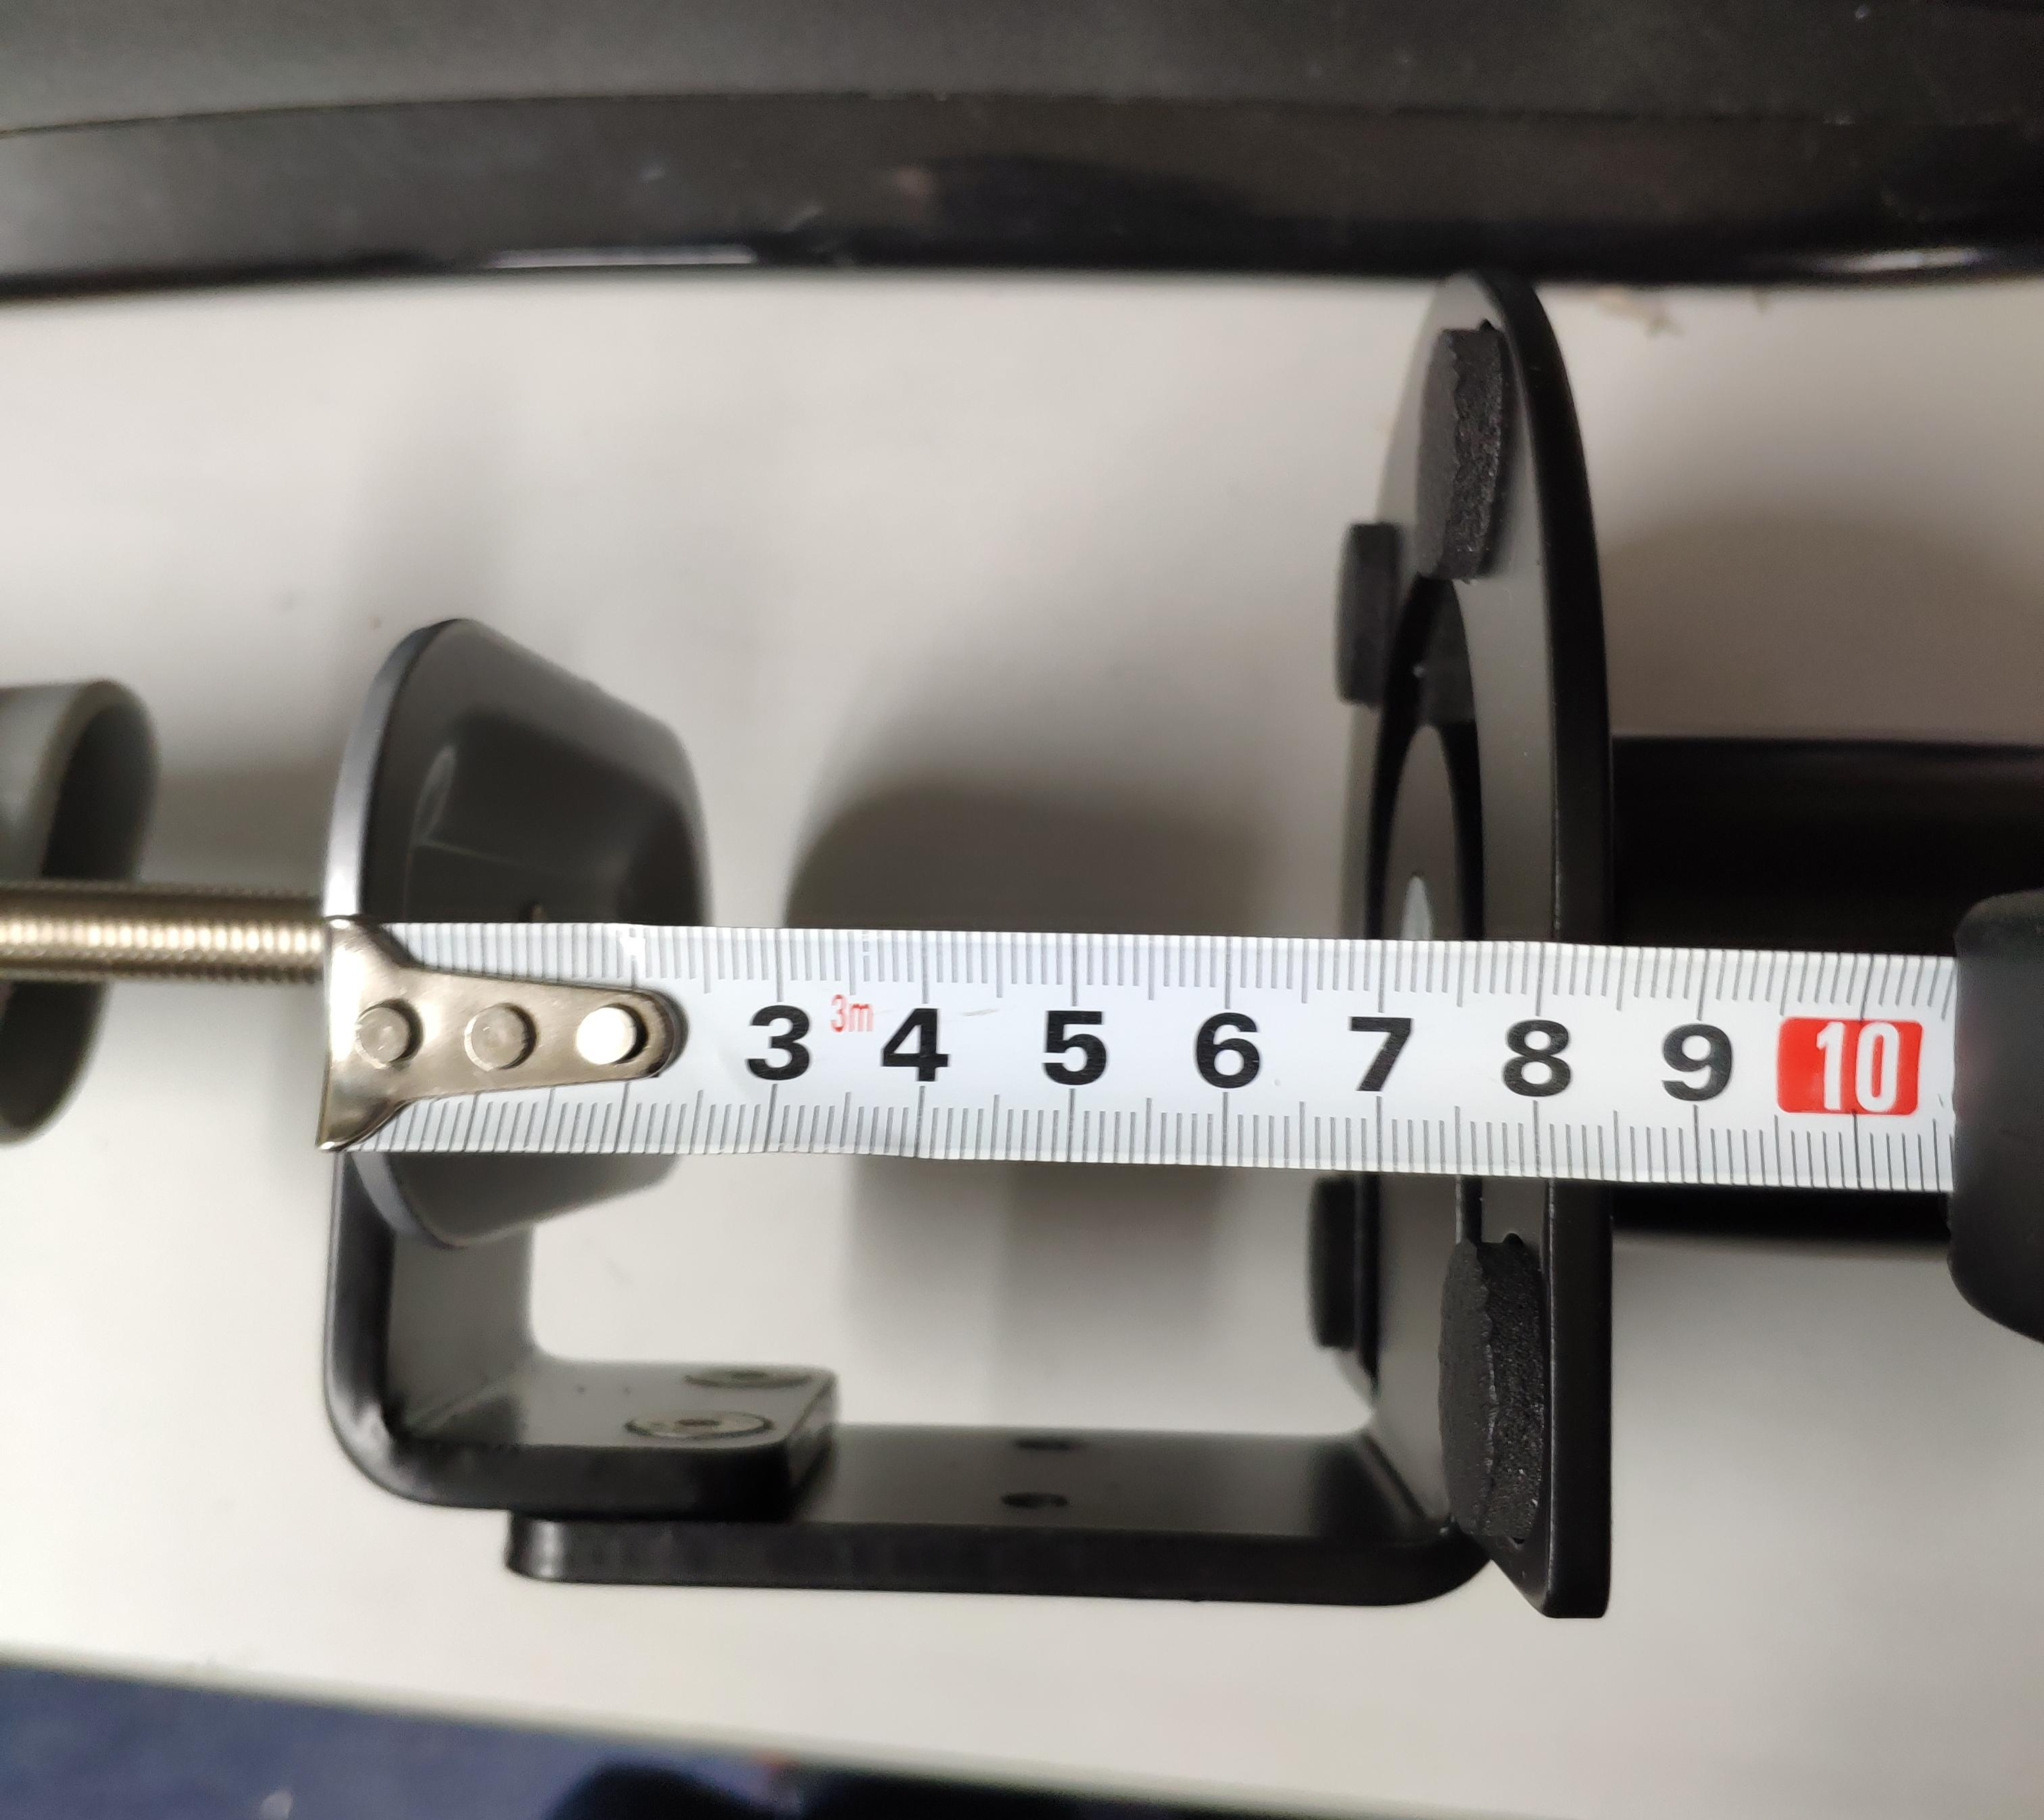 Clamp showing the maximum desk width